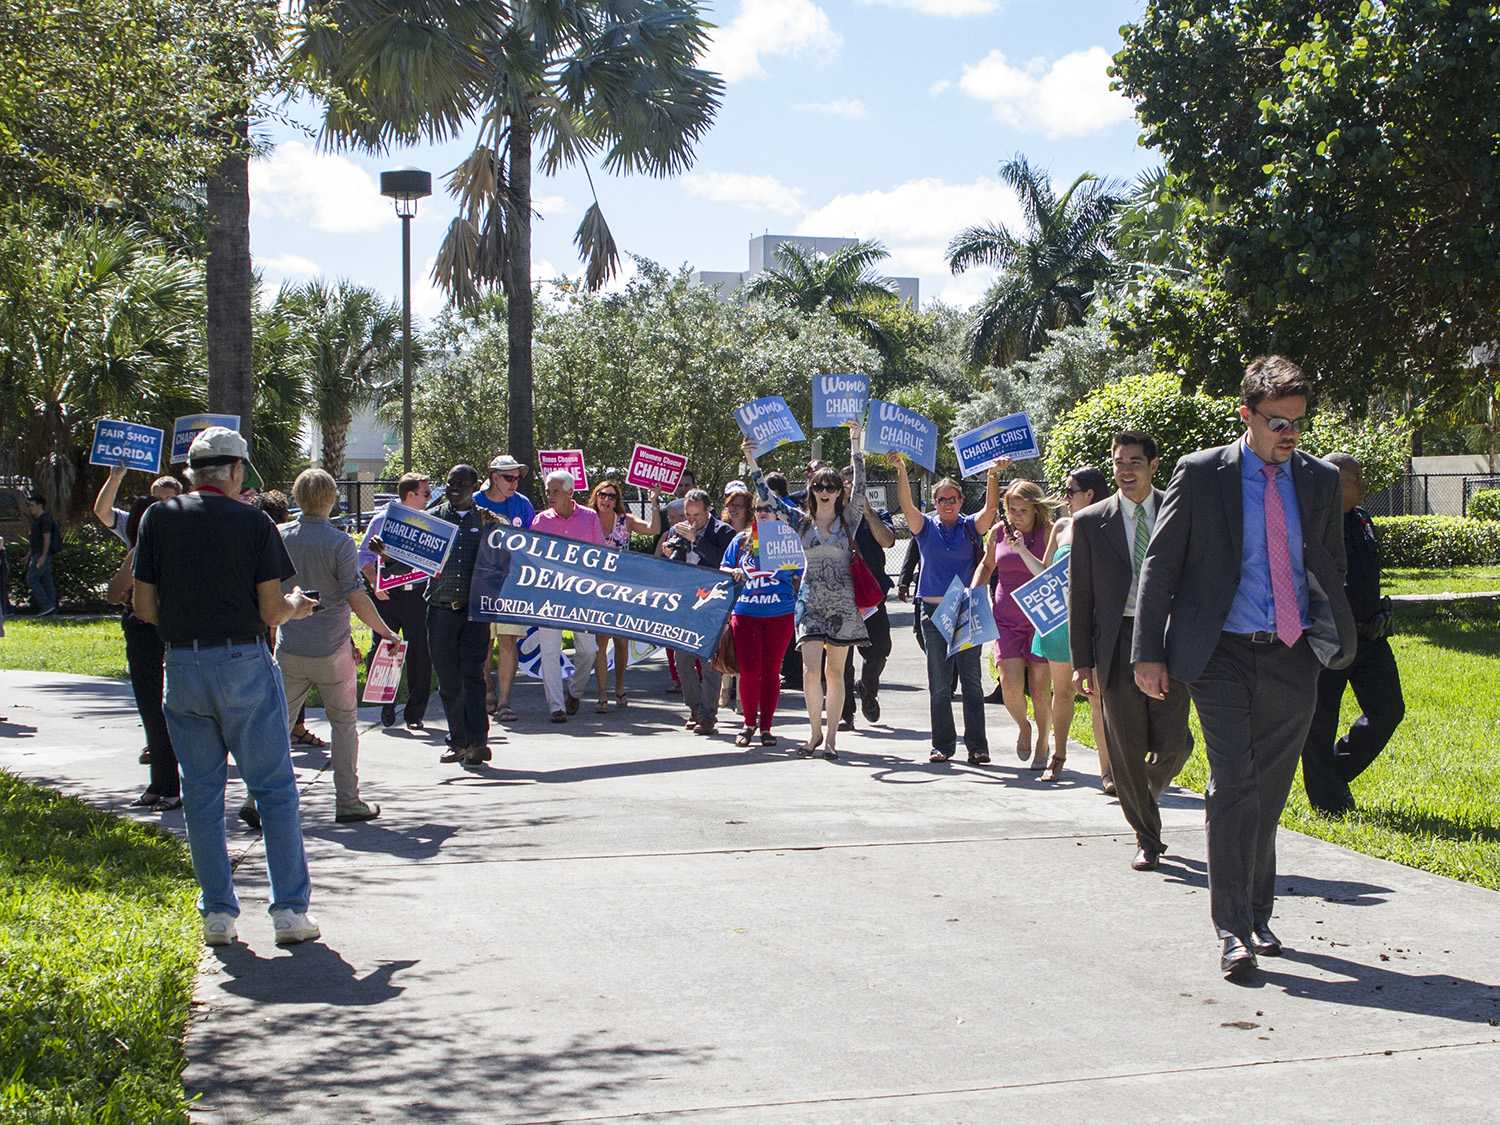 The FAU chapter of College Democrats greets Charlie Crist as he walks toward the free speech lawn. Crist is currently running as a Democrat, but has run as an Independent and Republican in past years.  [Sabrina Martinez | Assistant Creative Director]